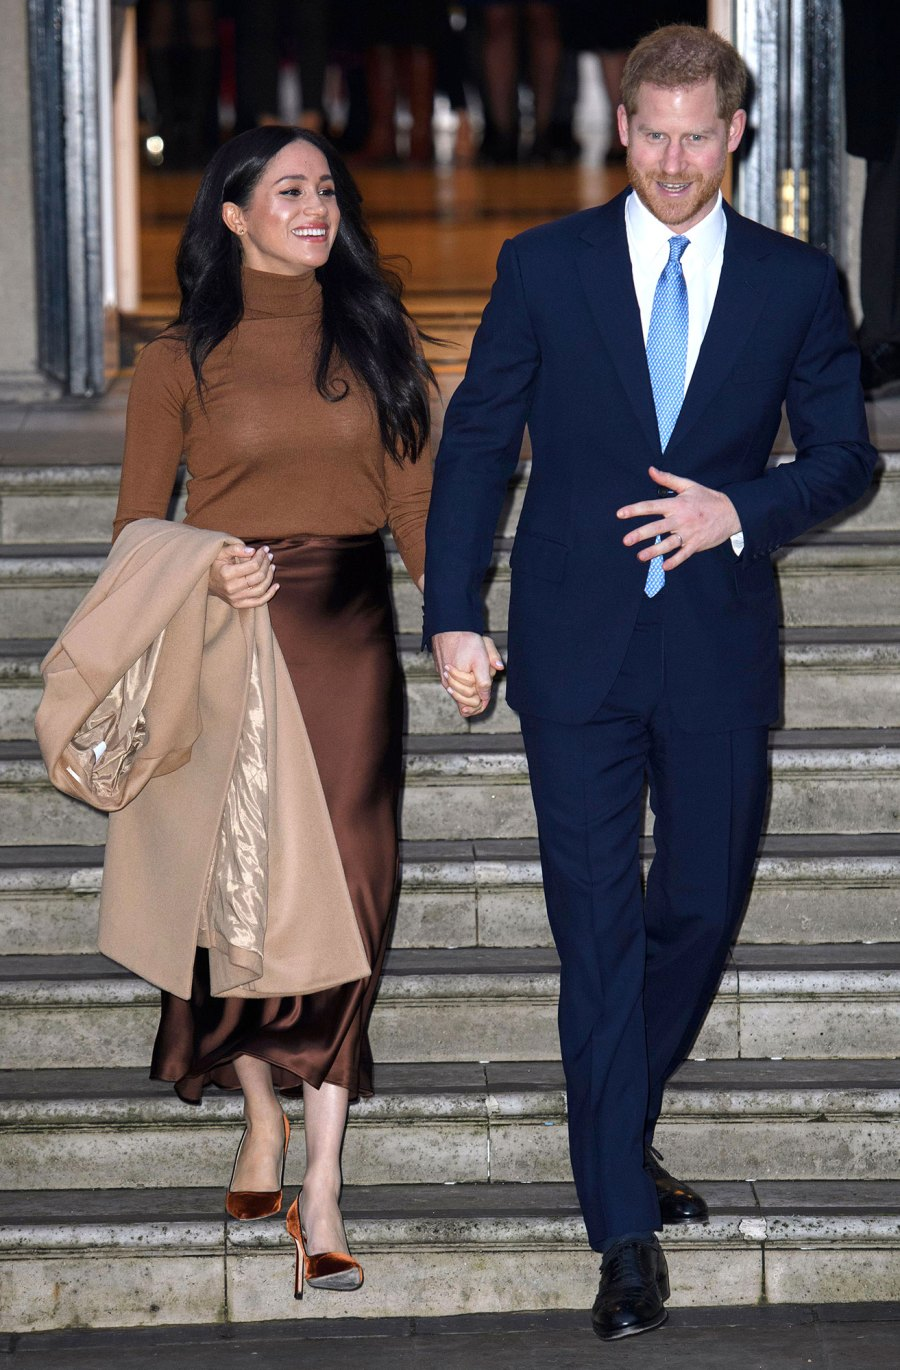 Exit Finding Freedom Book Revelations About Prince Harry Meghan Markle